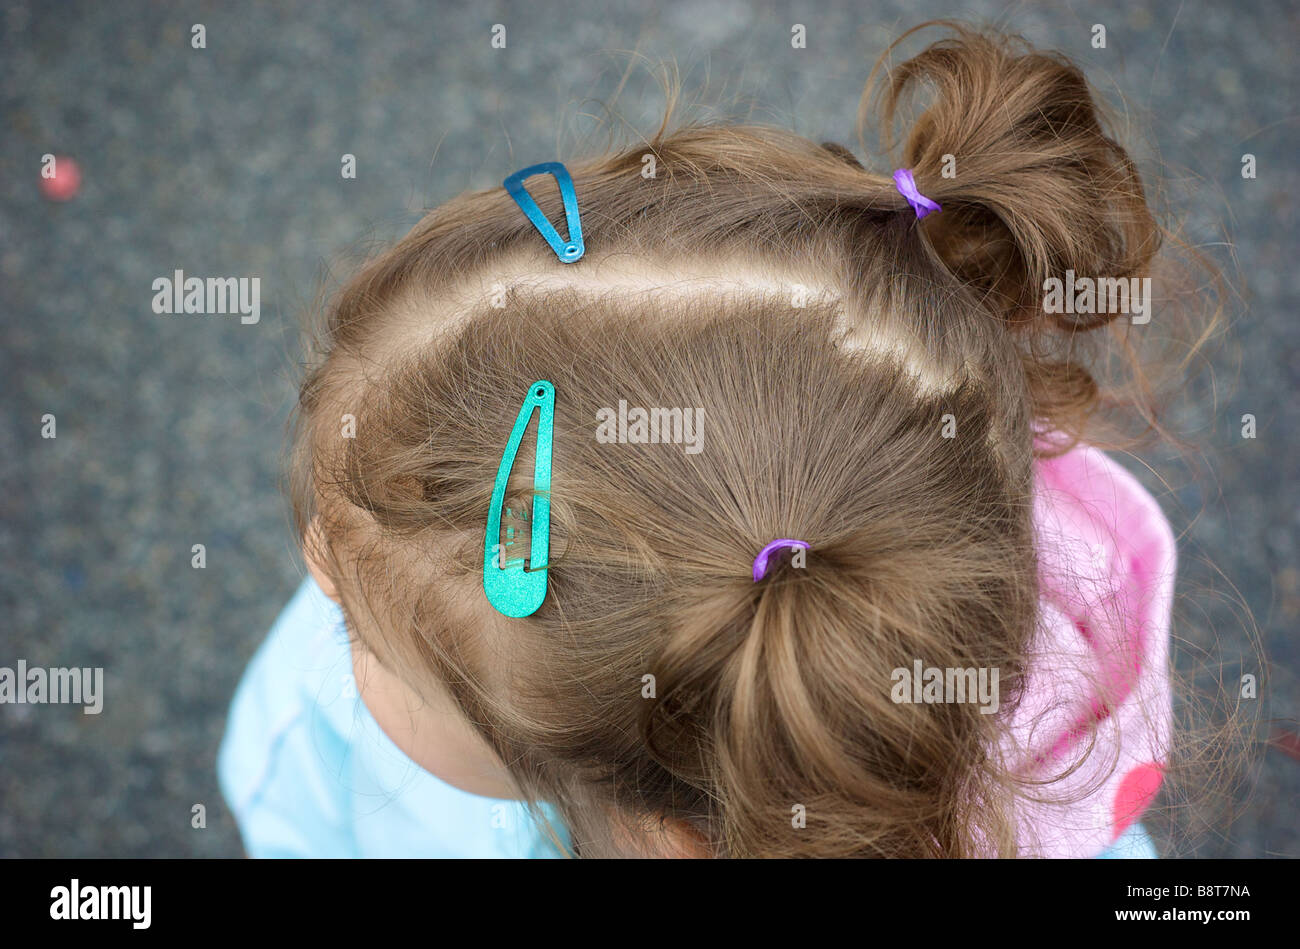 High Angle Close up View of Little Girls Head with Barettes and Pigtails - Stock Image